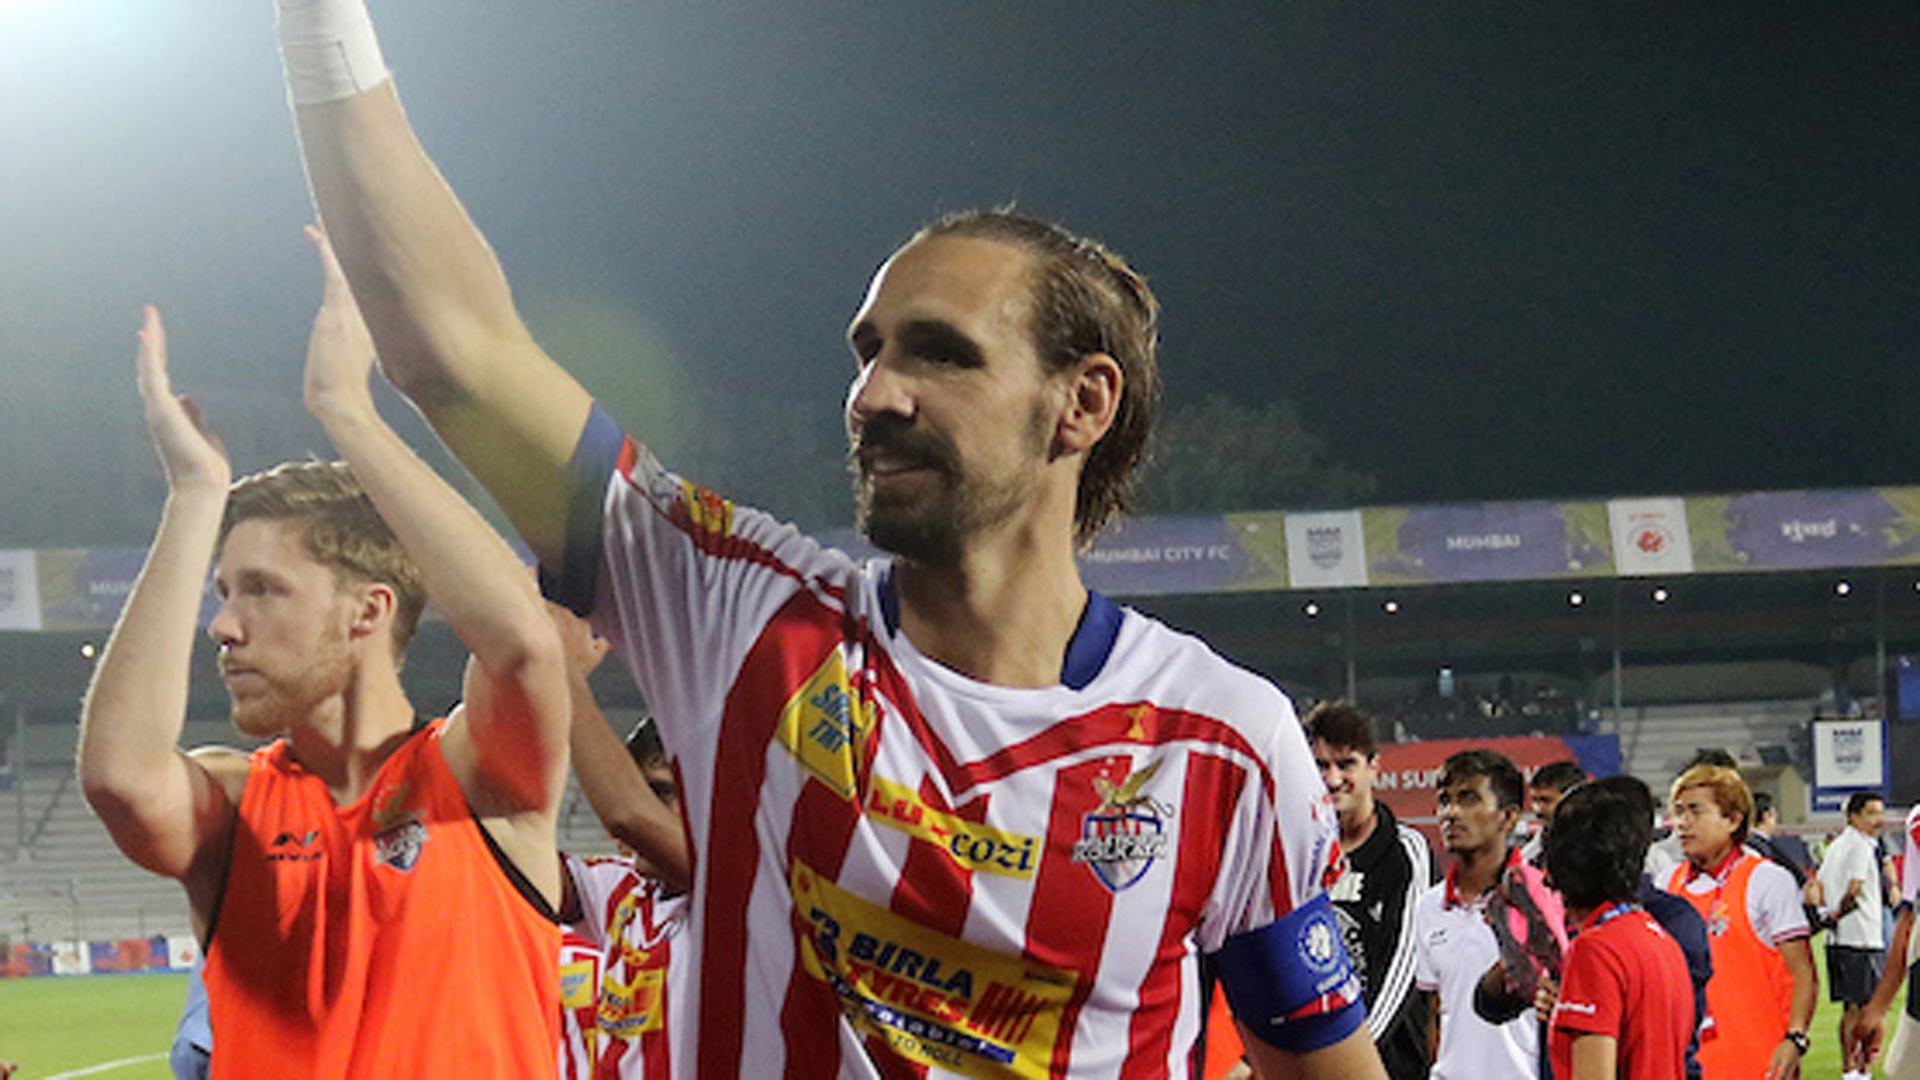 ISL champions ATK reach home city to warm reception